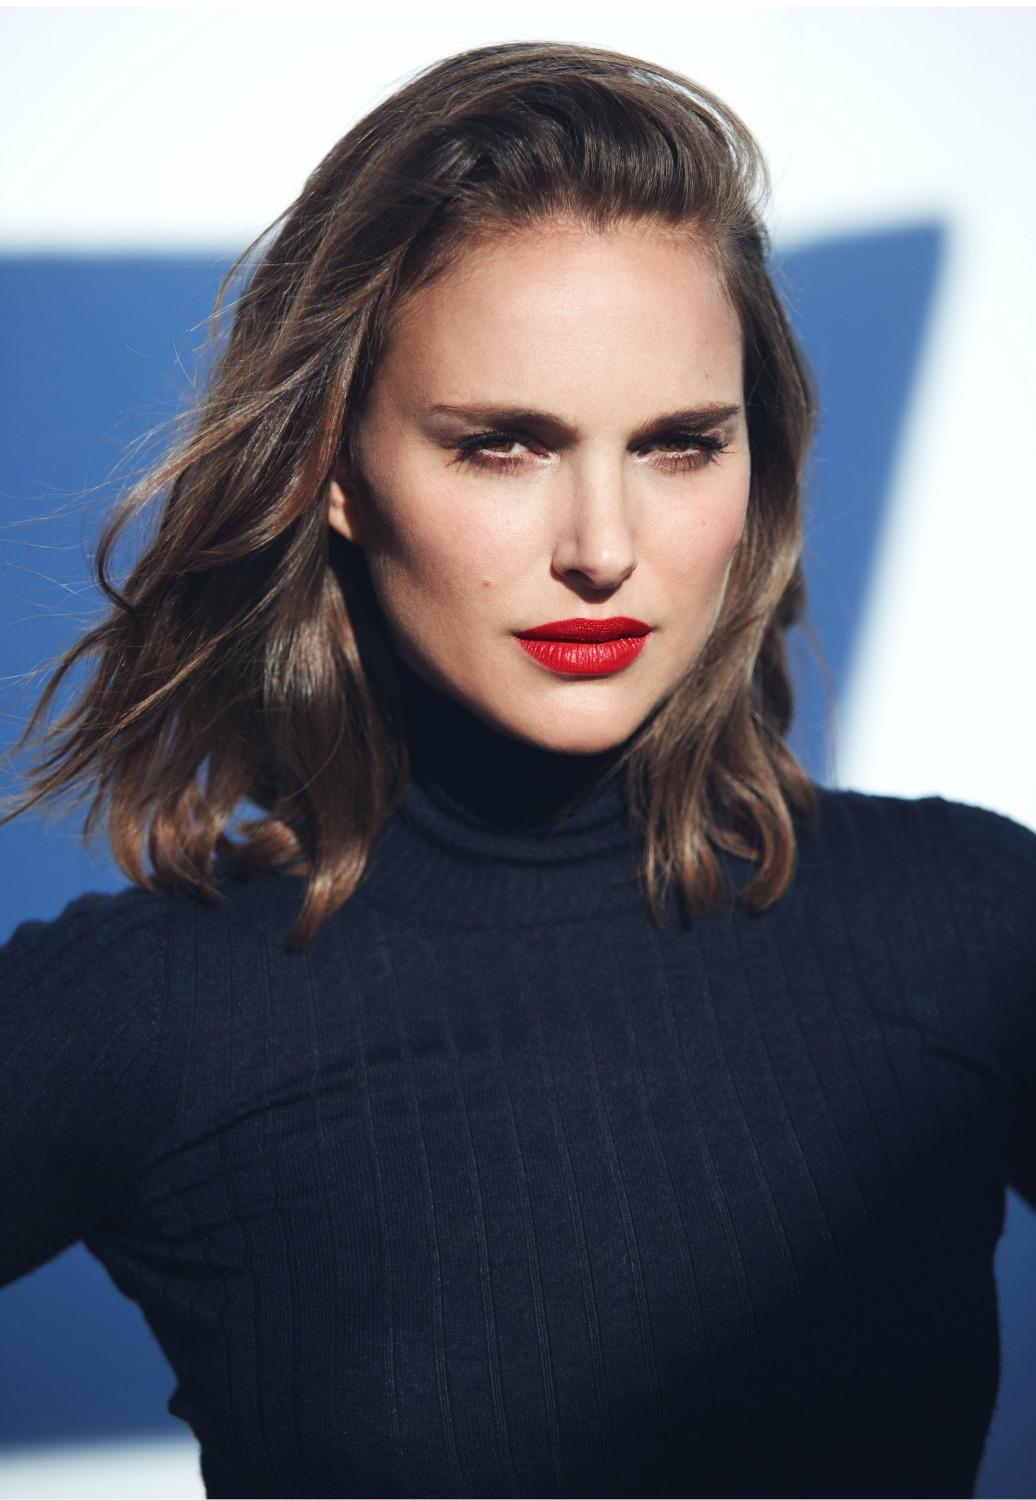 Pics Natalie Portman nudes (48 photos), Ass, Bikini, Instagram, cleavage 2020